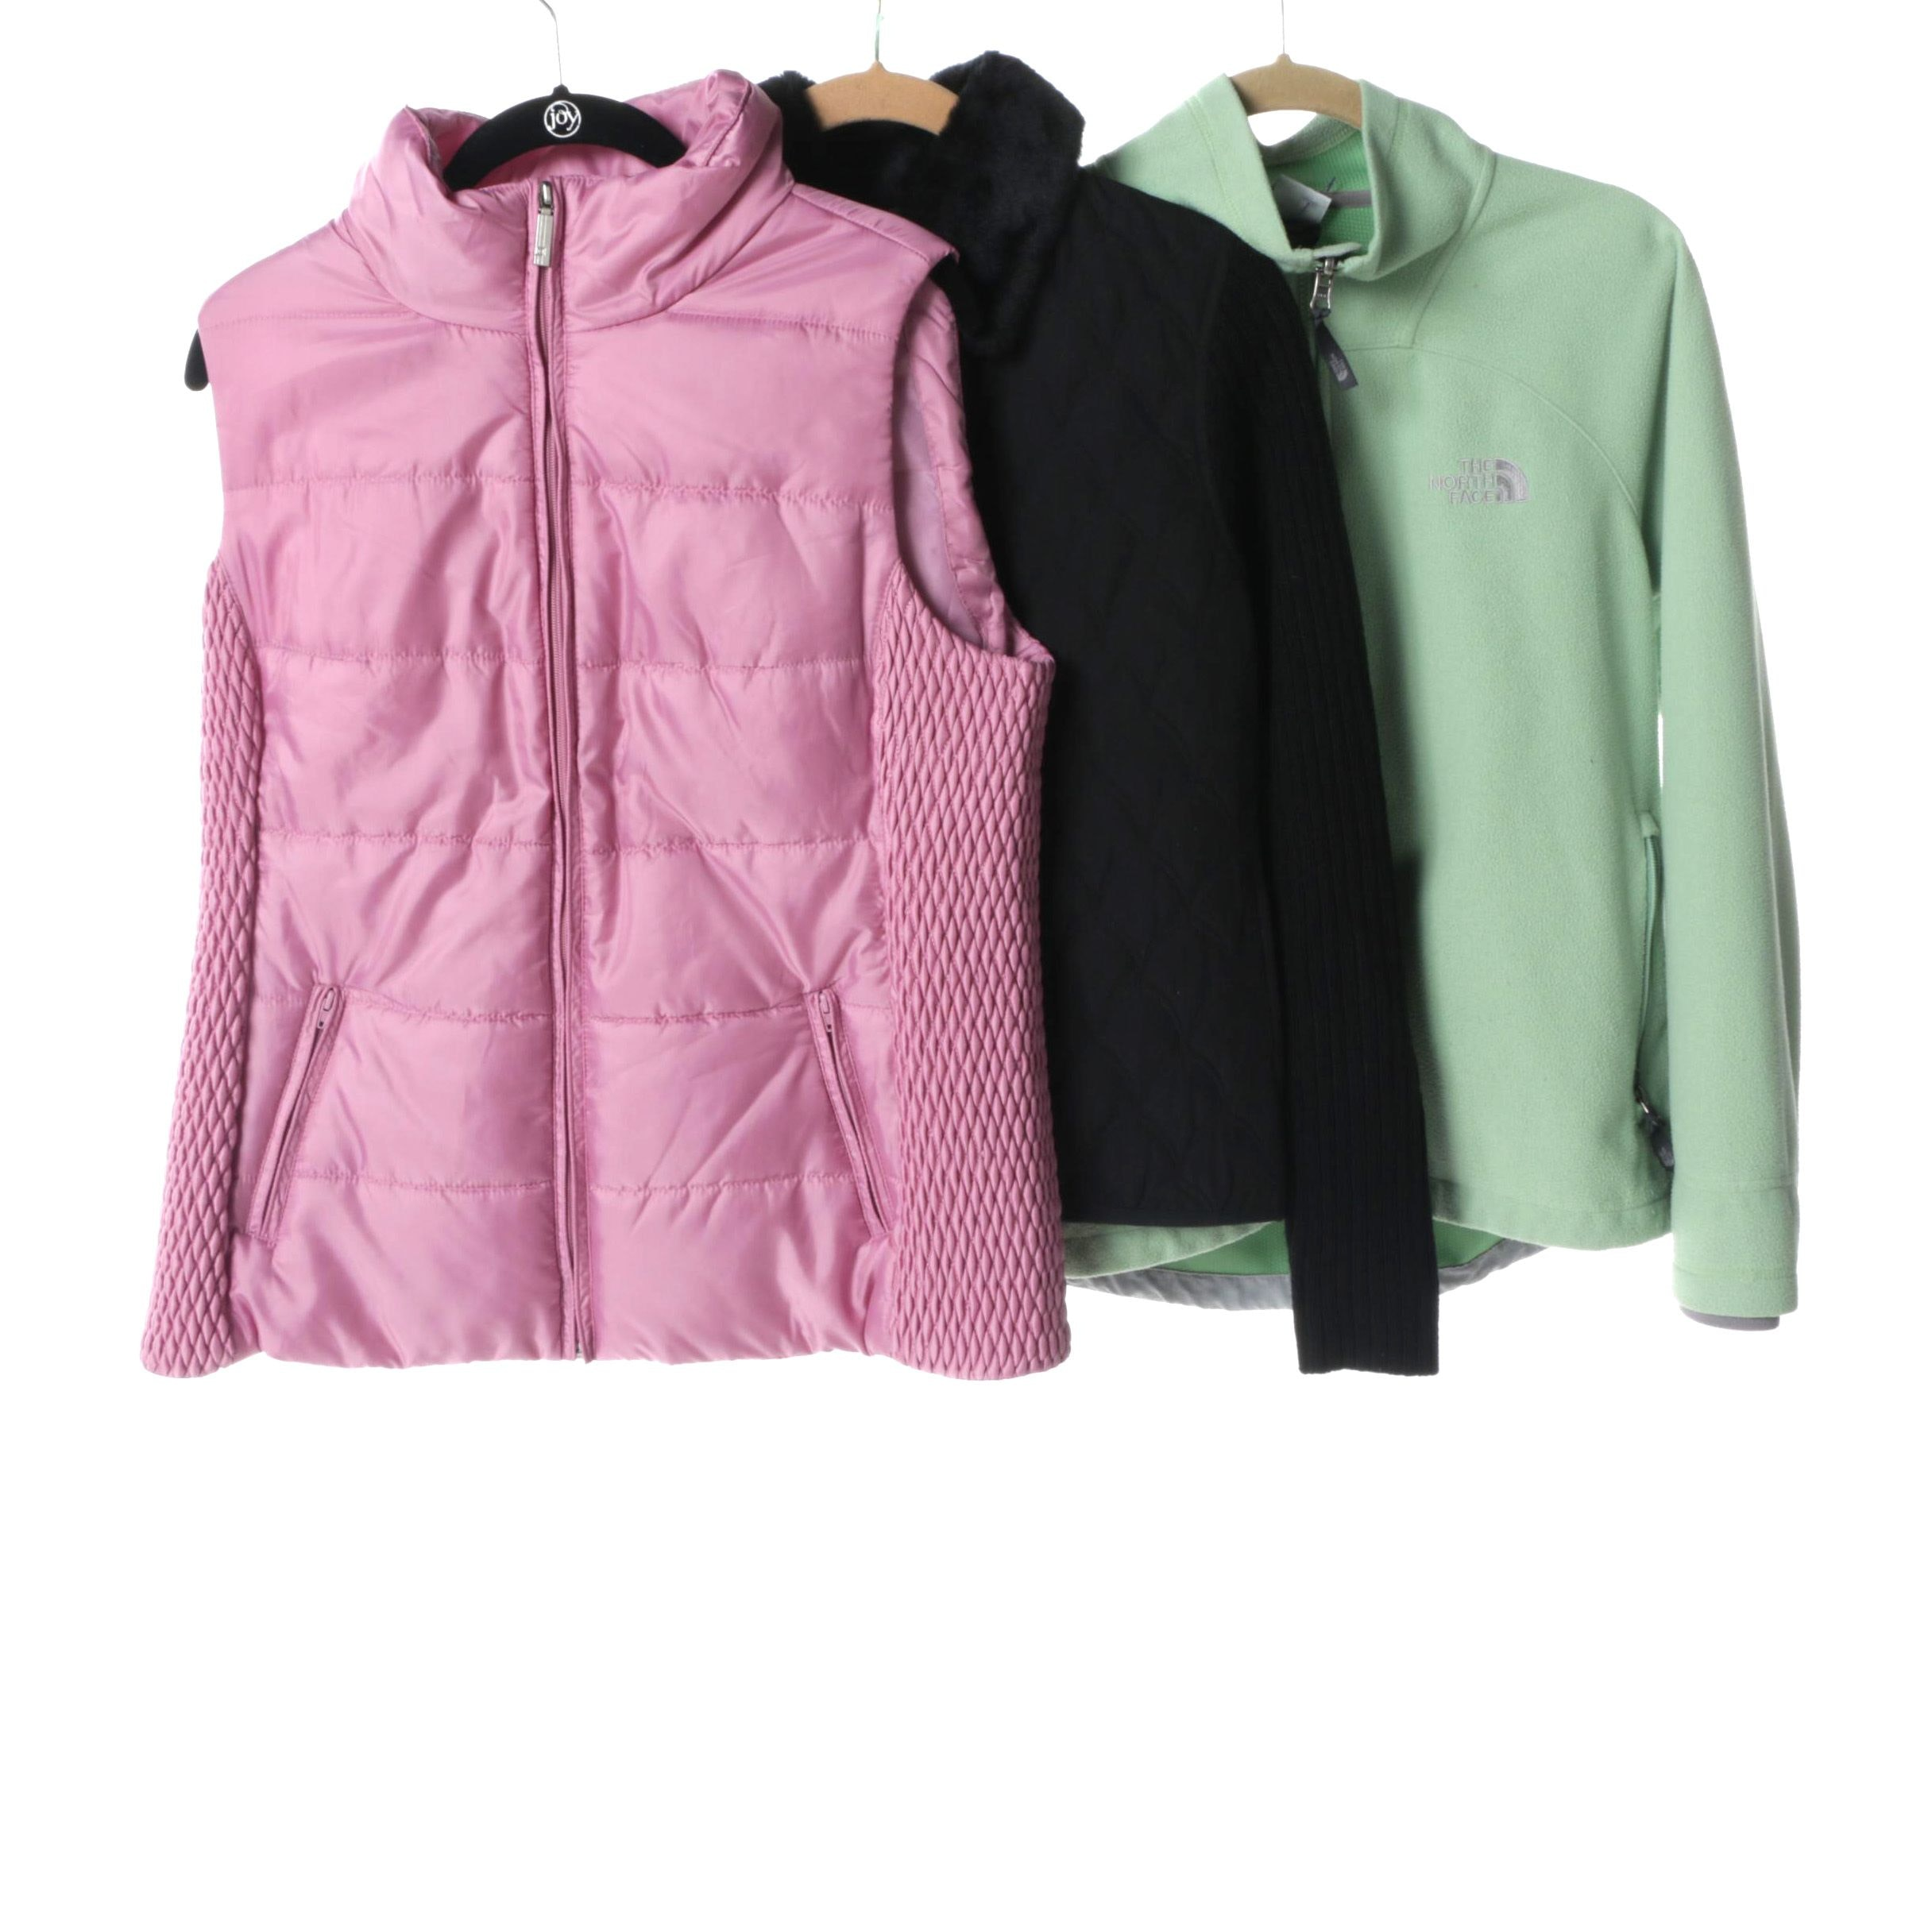 Women's Outerwear Including The North Face and Liz Claiborne